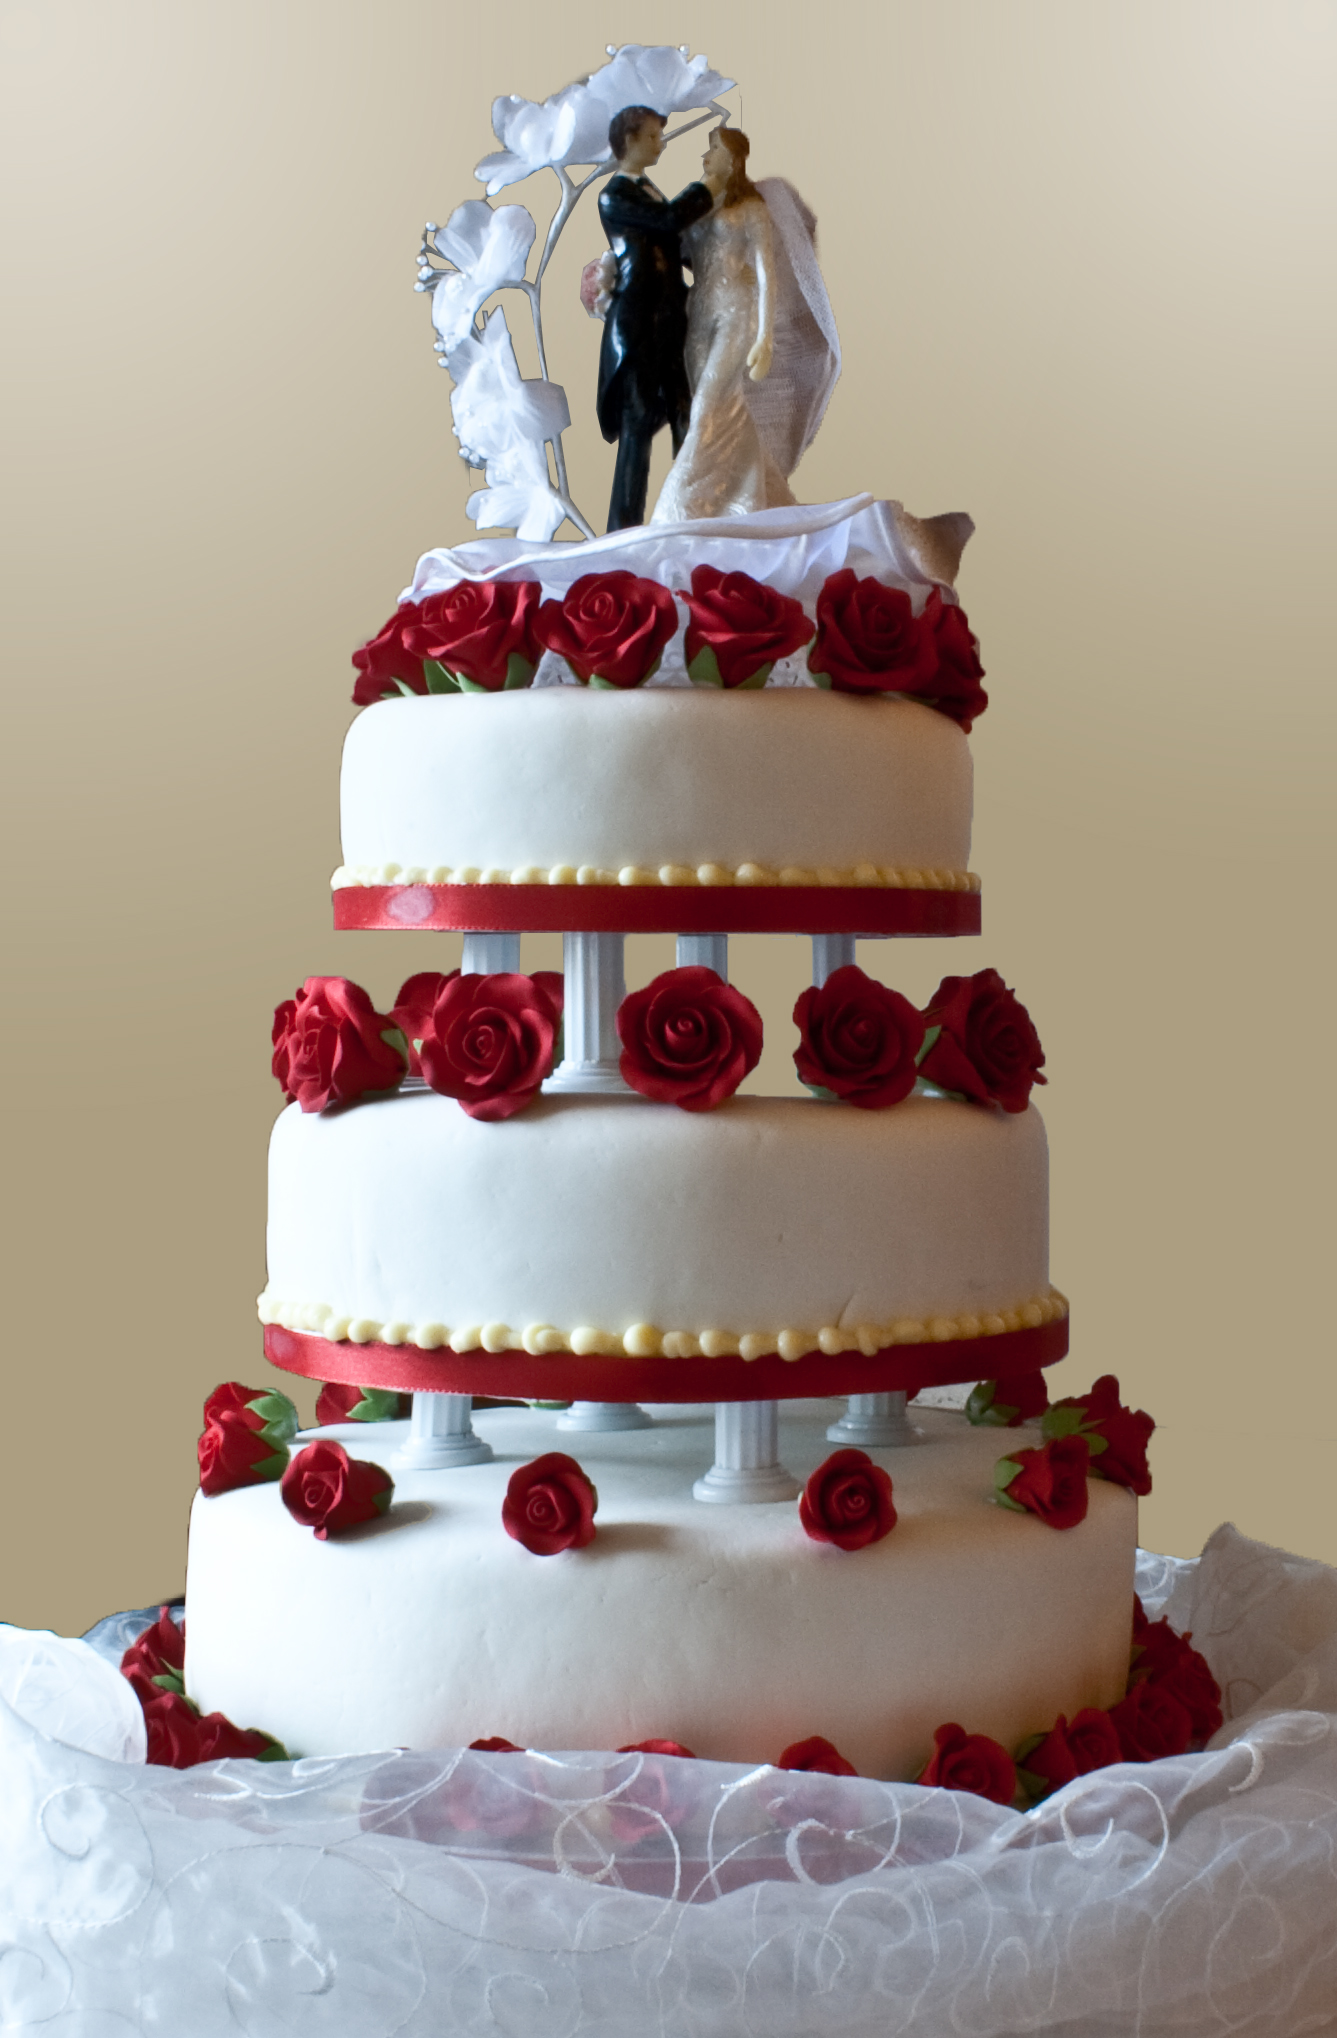 Typical French Wedding Cake